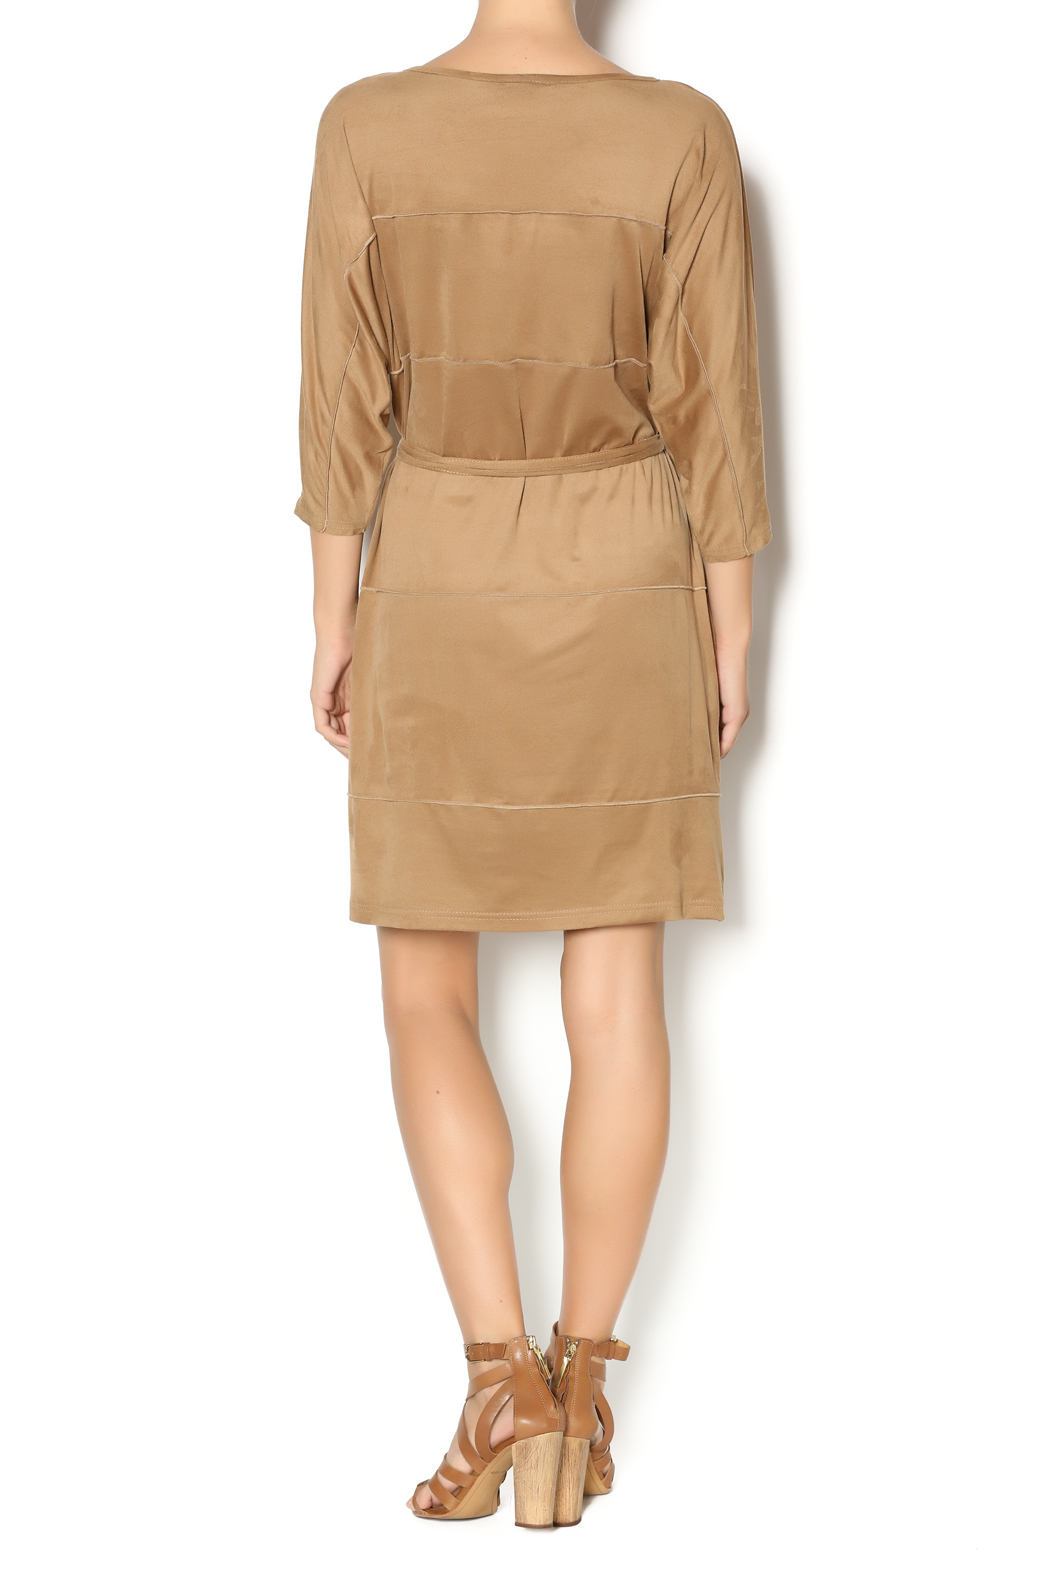 MSK Faux Suede Dress - Side Cropped Image